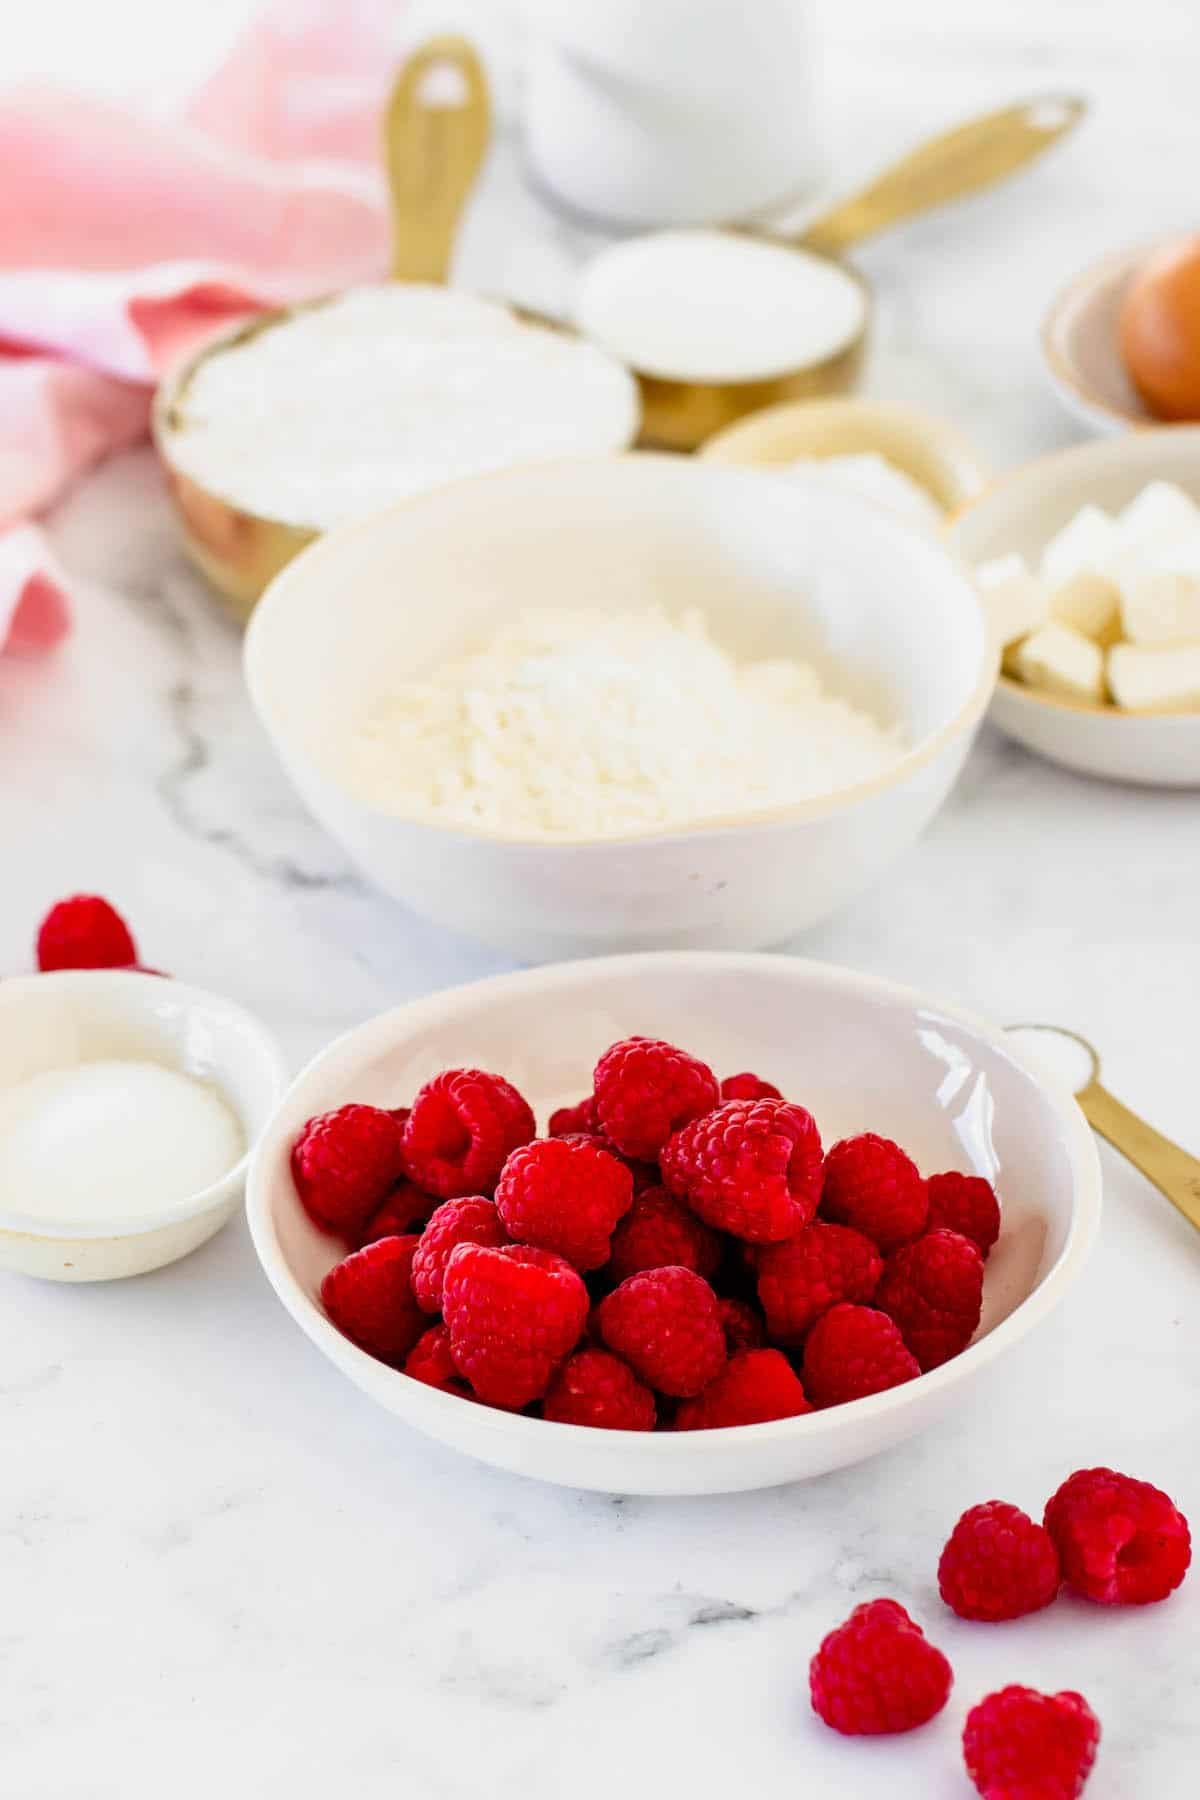 A white bowl of raspberries and a white bowl of flour